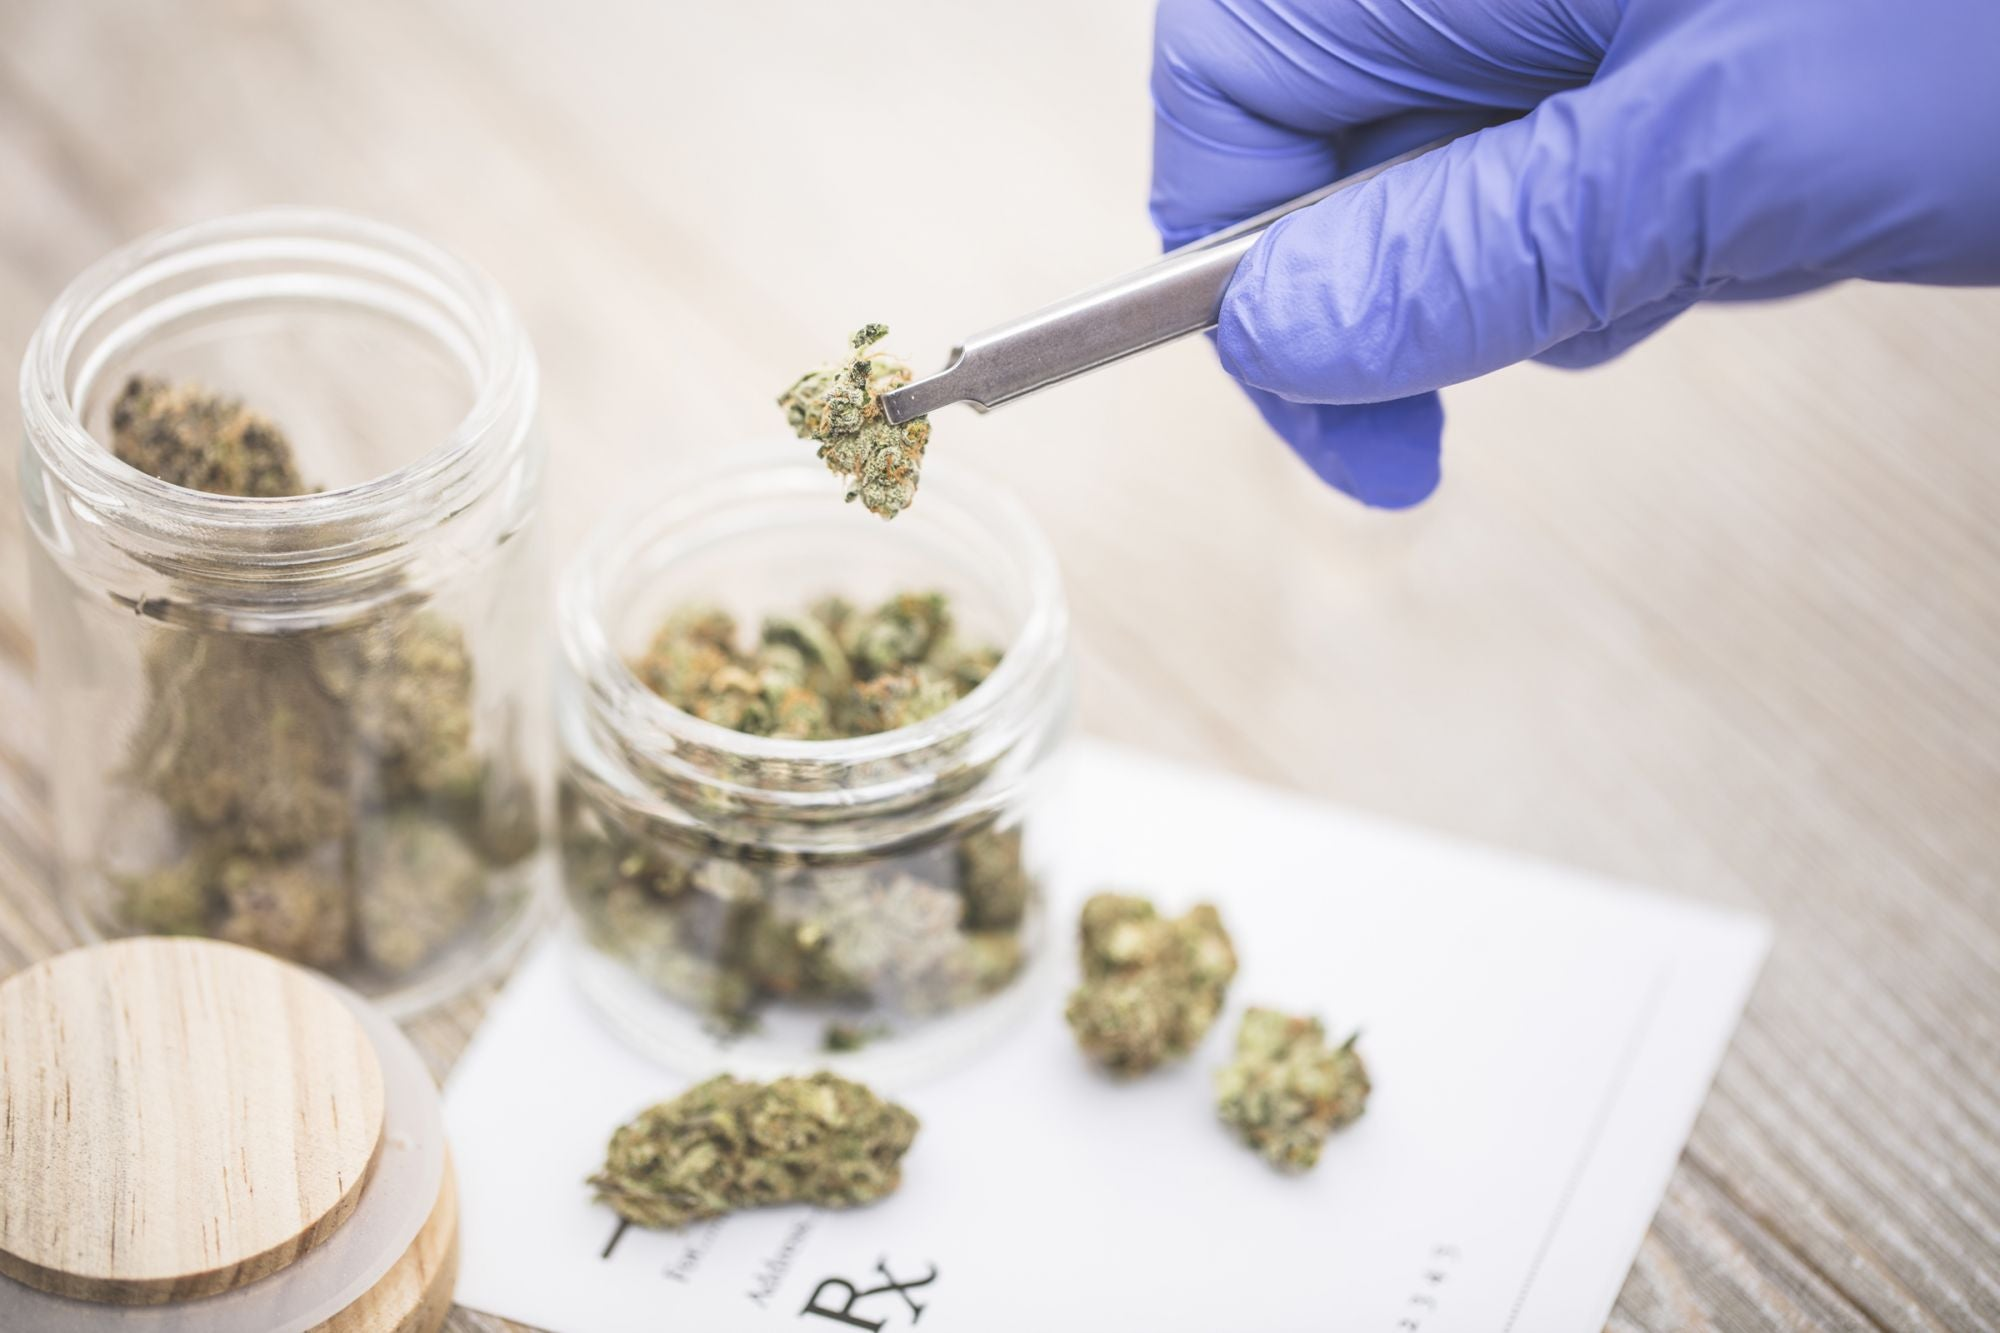 More Medical Cannabis Companies Bolster Operations In Lucrative Florida Market Following Smokable Flower Ban Repeal